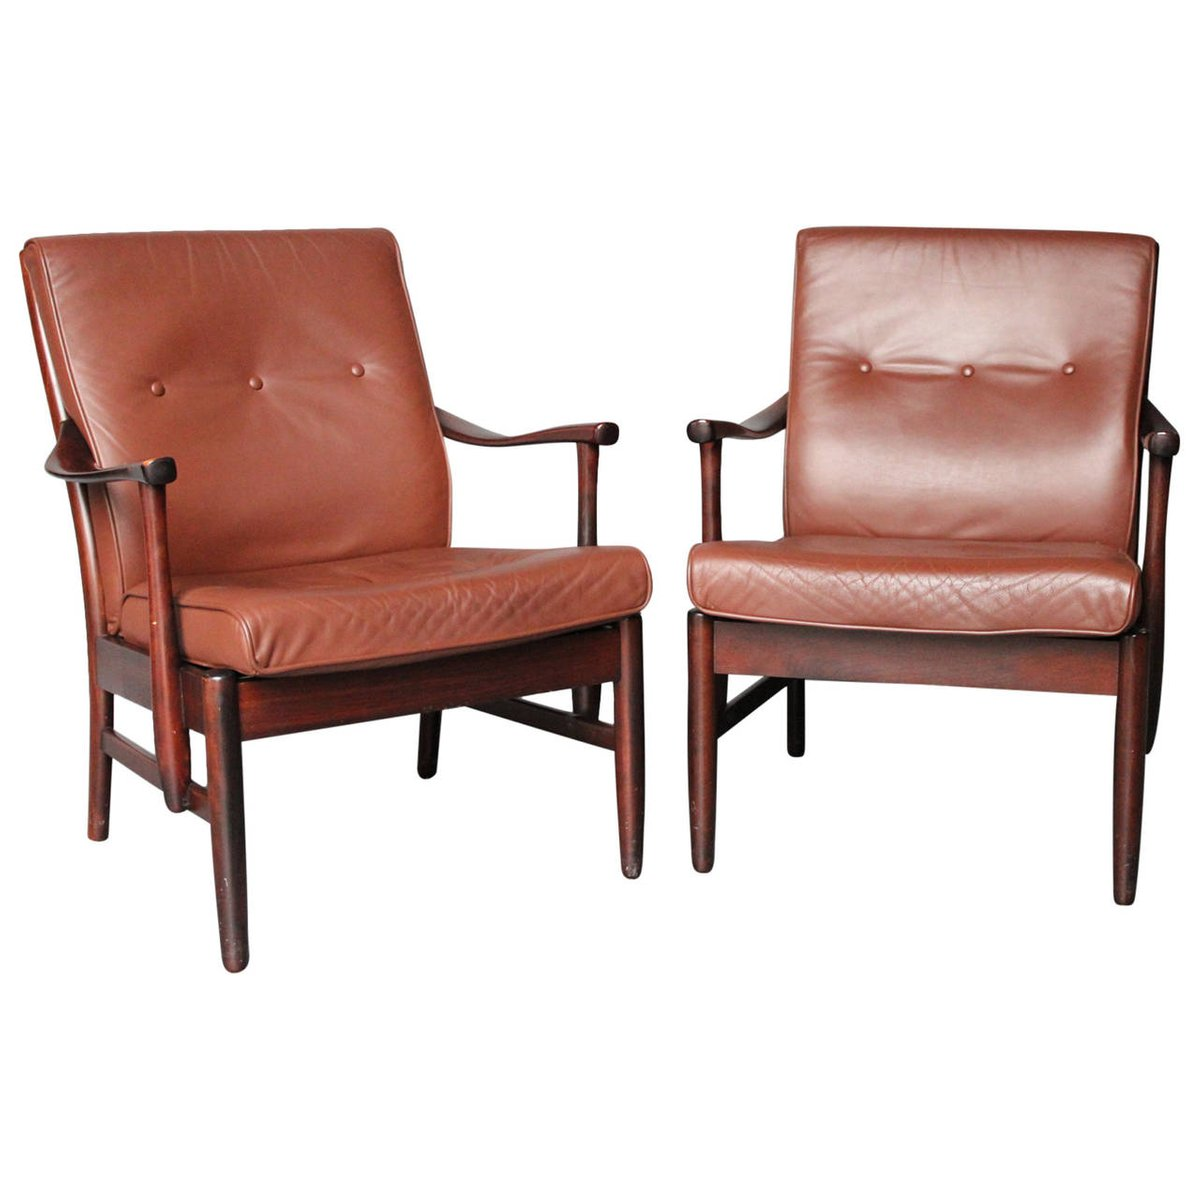 Polished Mahogany Armchairs, 1960s, Set of 2 for sale at ...